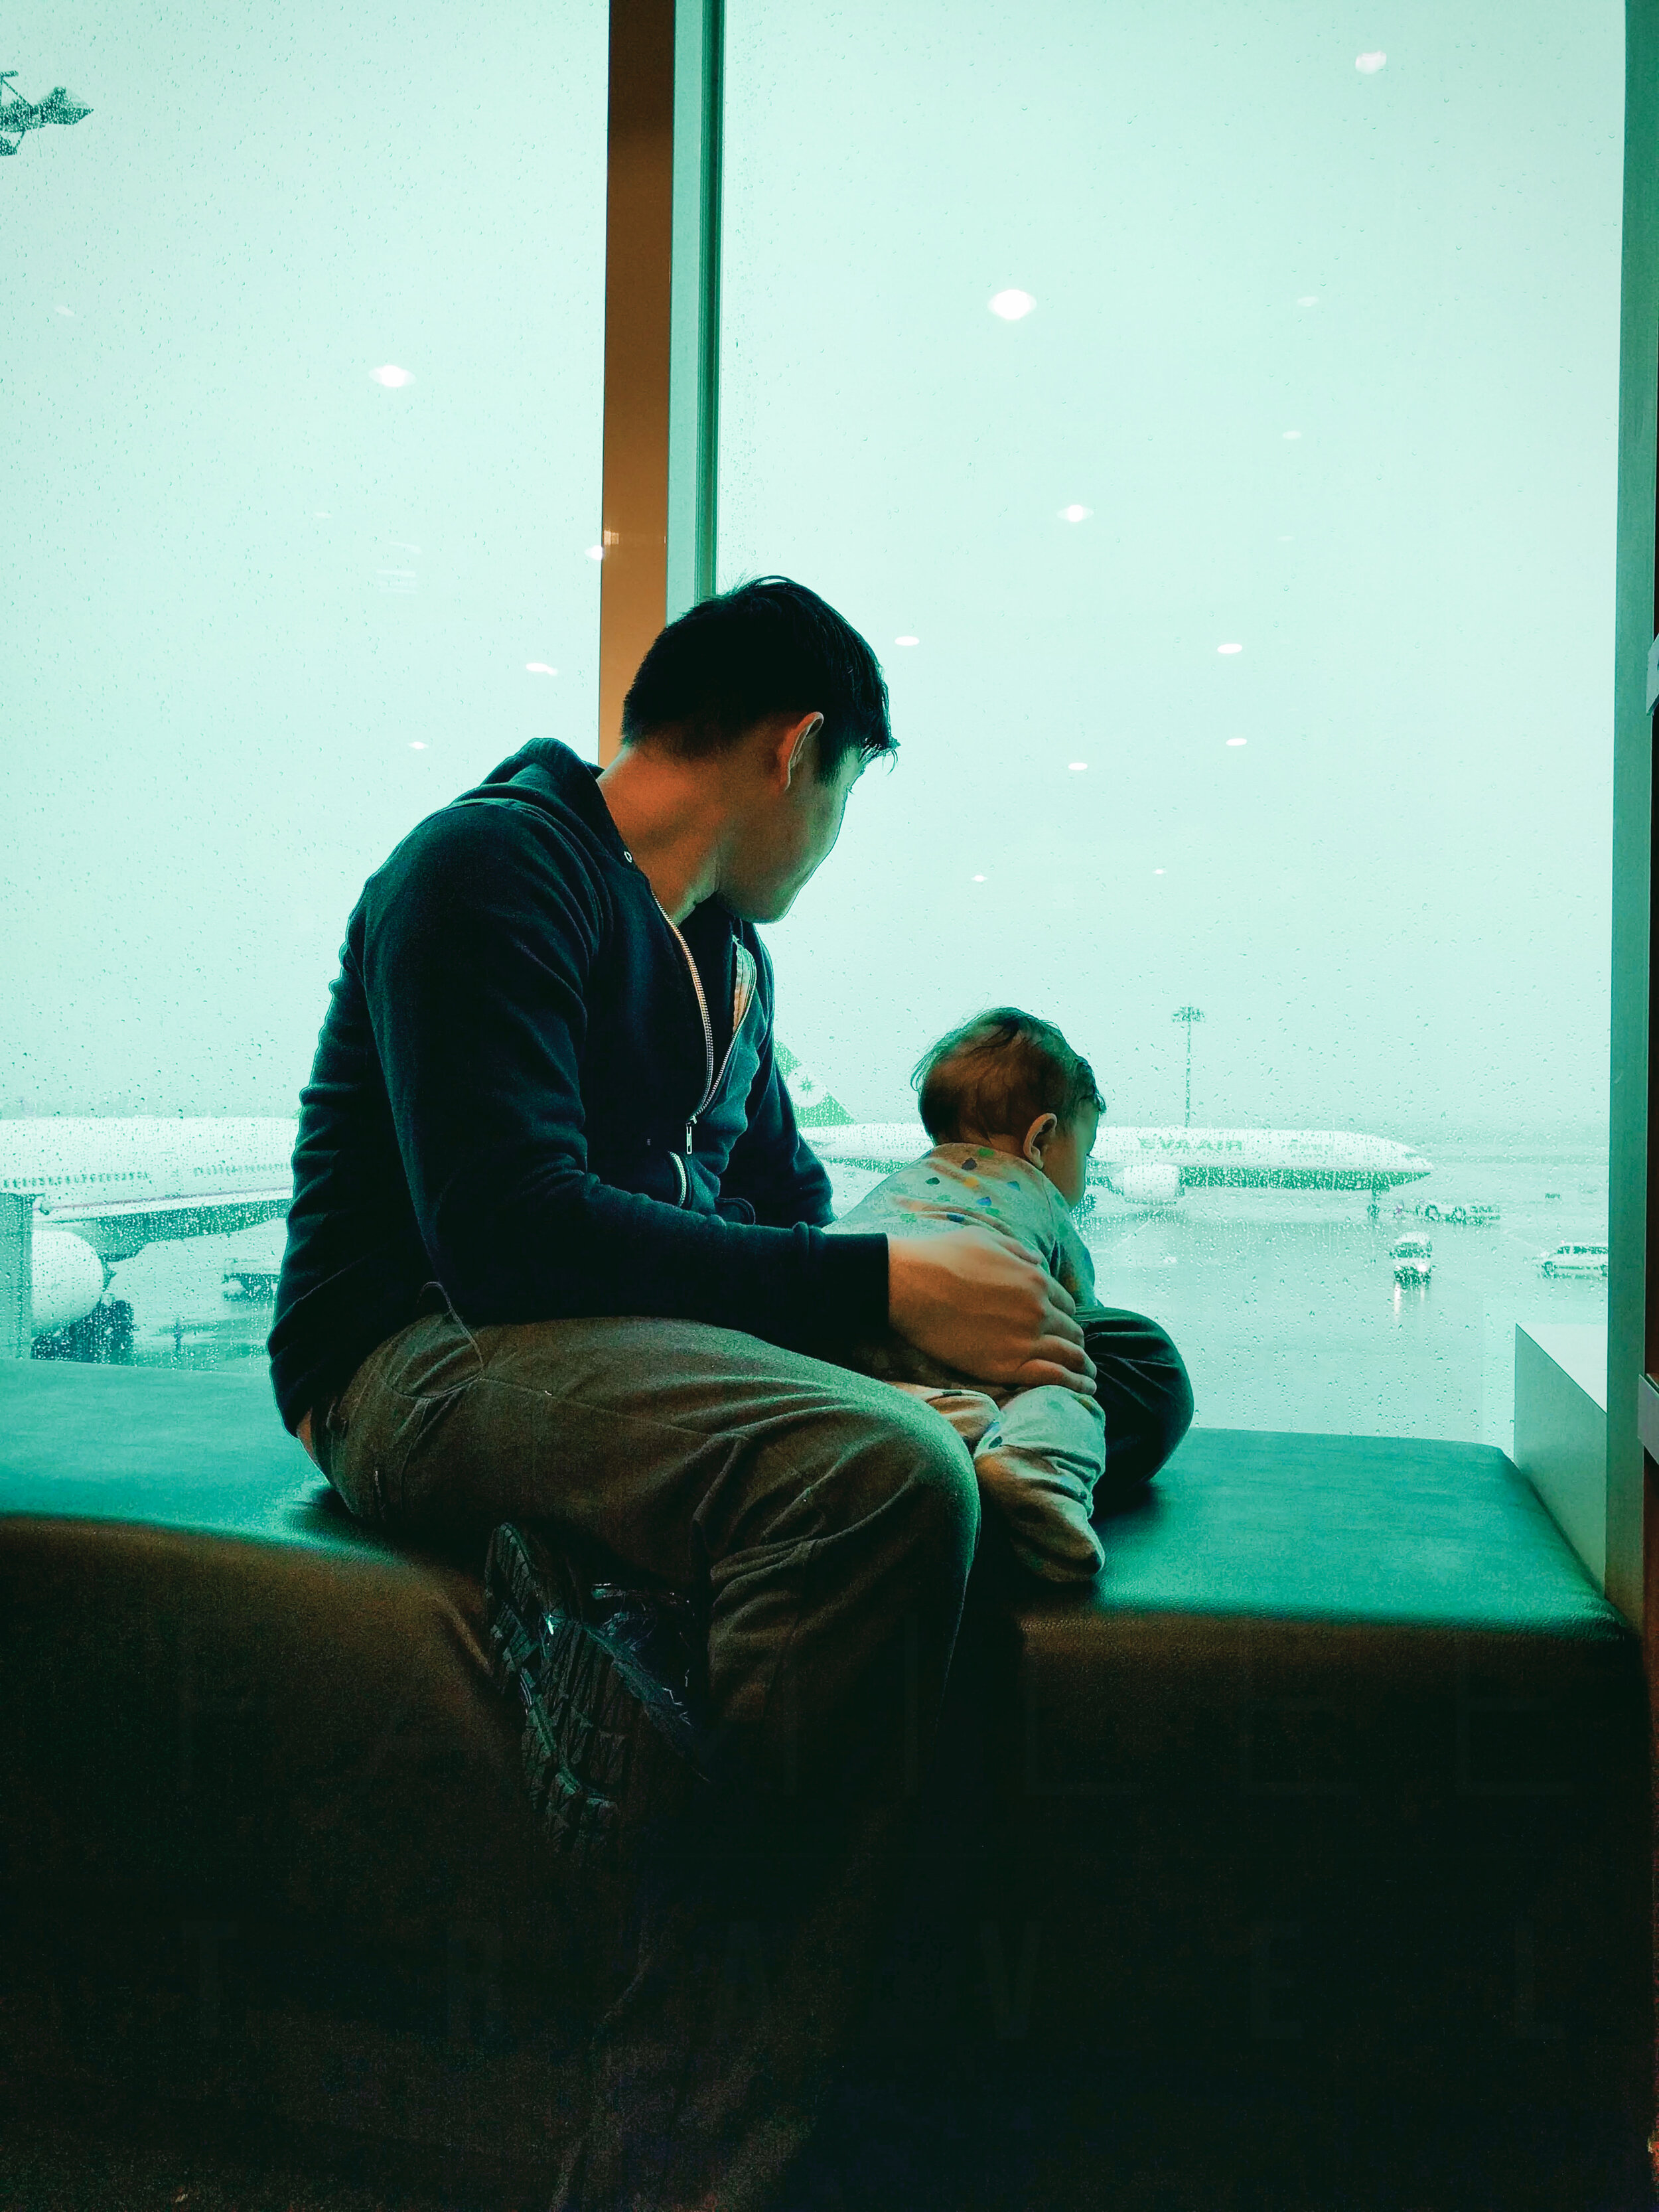 Steve and Elden (7 months old) on a layover